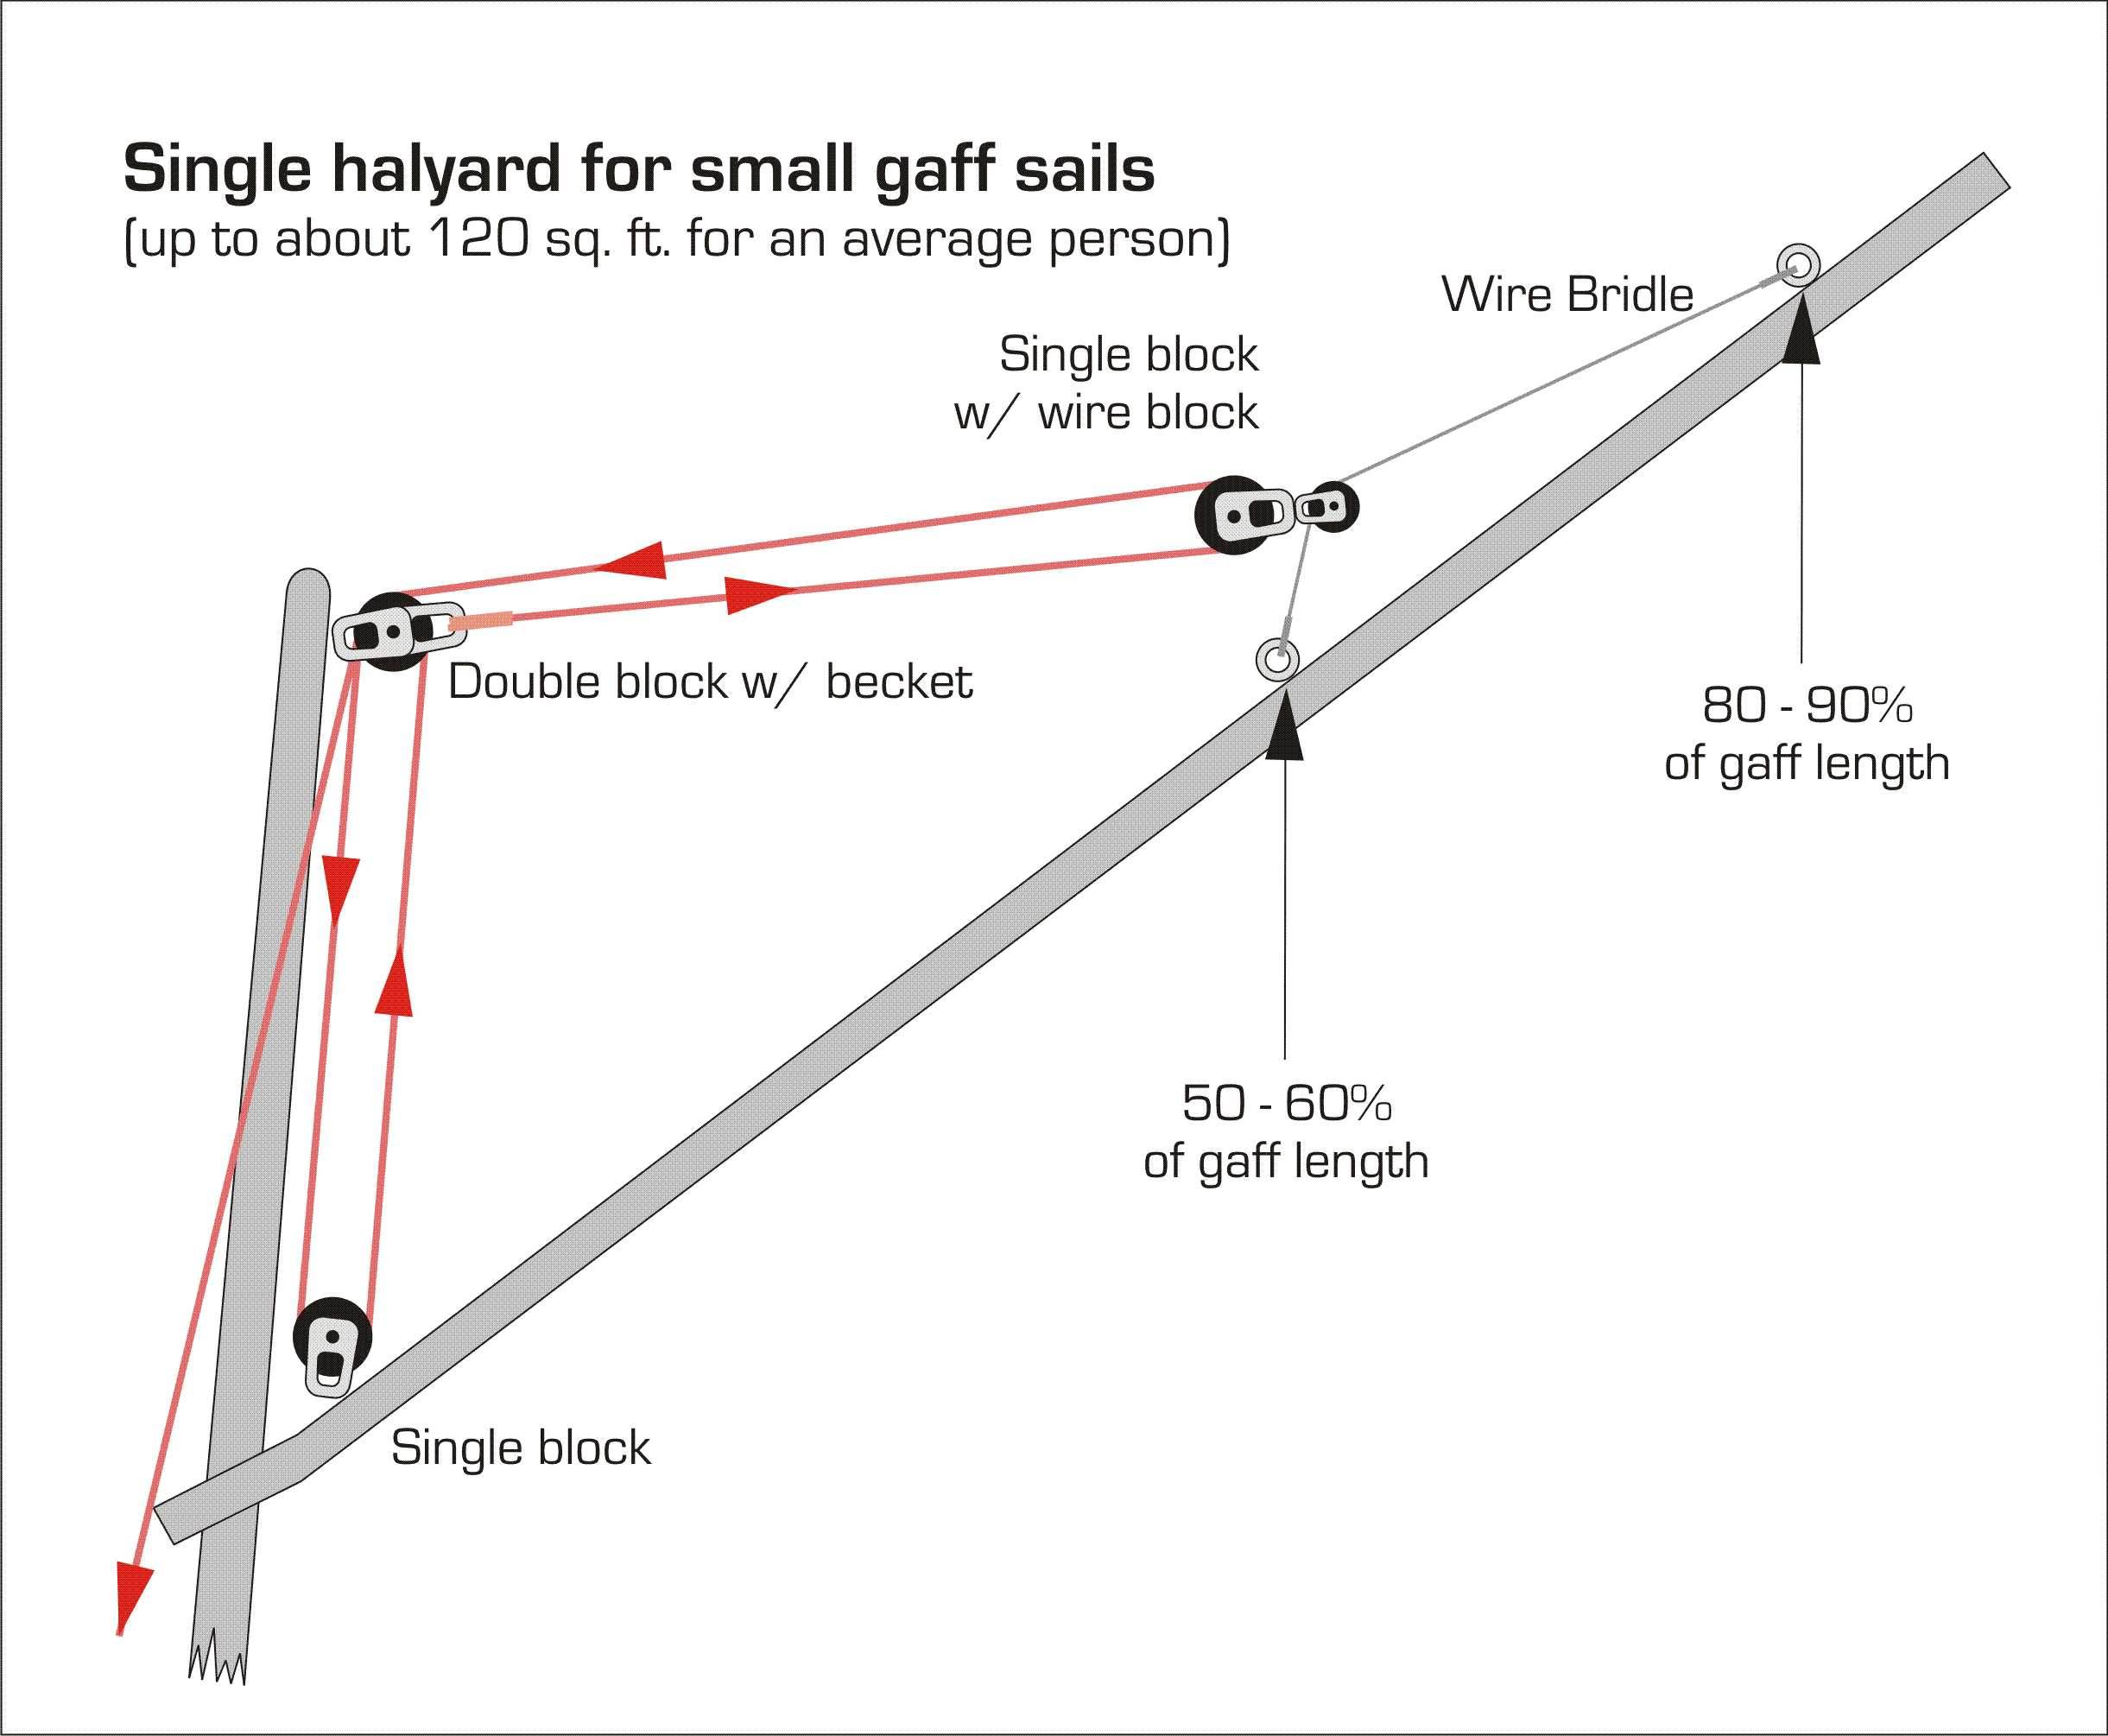 Must be nuts ,here we go again | Land Yacht Sailing Forums